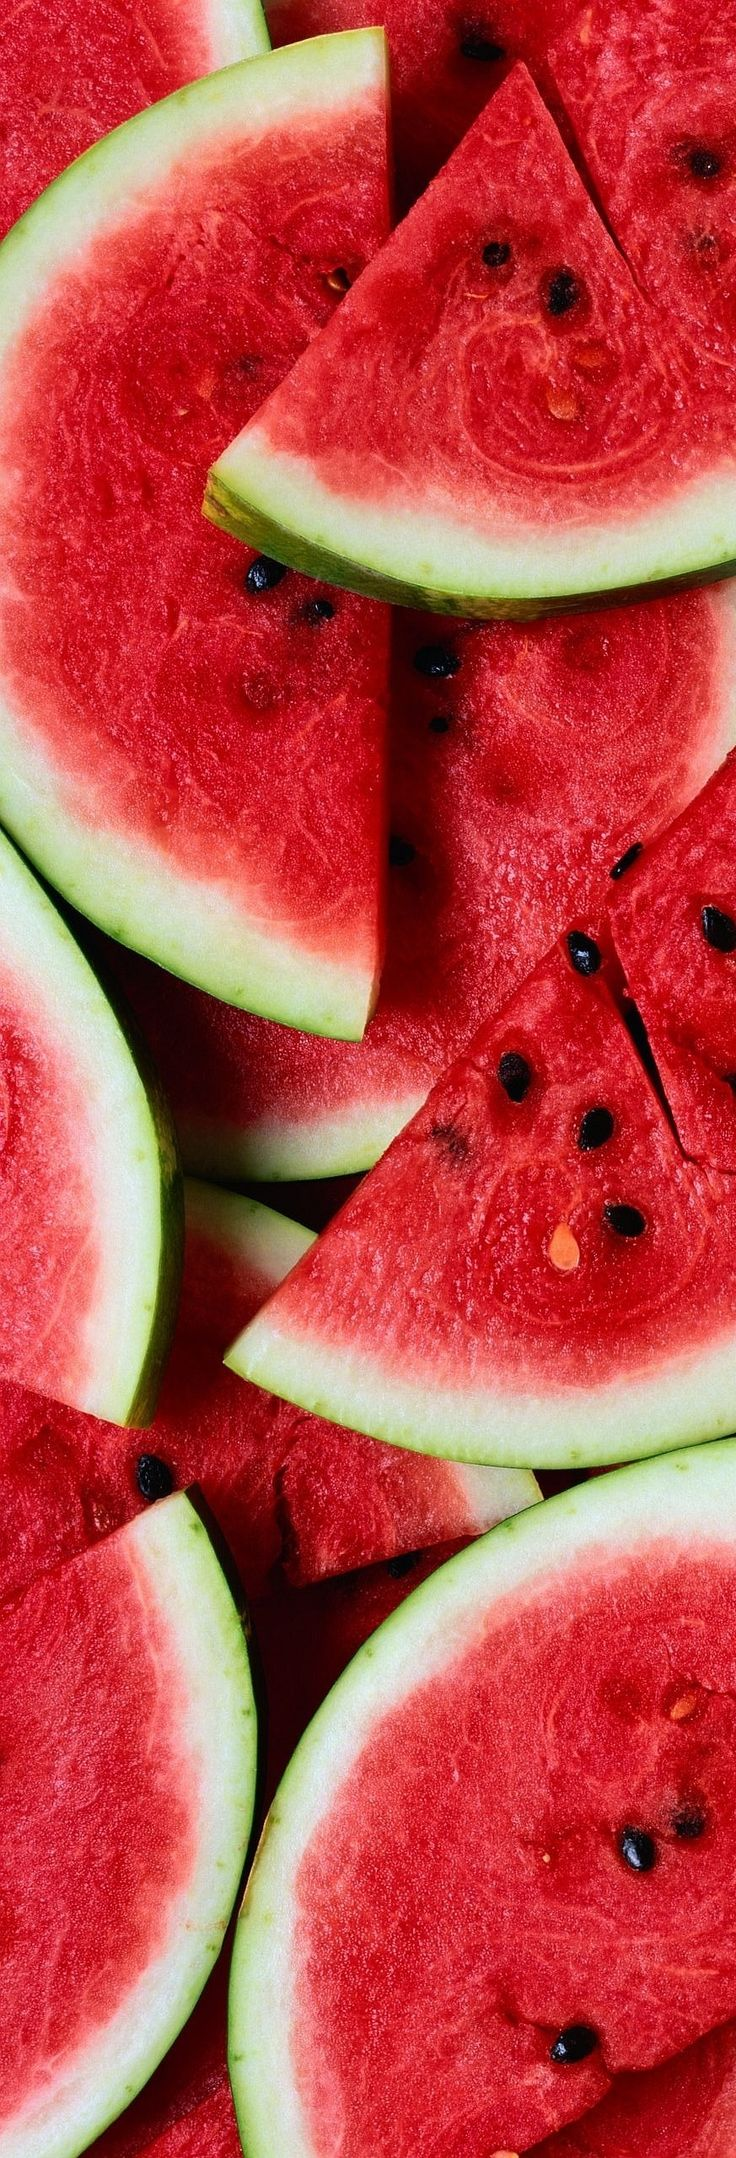 Watermelons is everyone's favorite summer fruit!!! it's also a beauty must! Low in calories and high in vitamins A and C, watermelon is said to help hydrate skin and fight free radicals with its large amount of lycopene (a potent antioxidant).